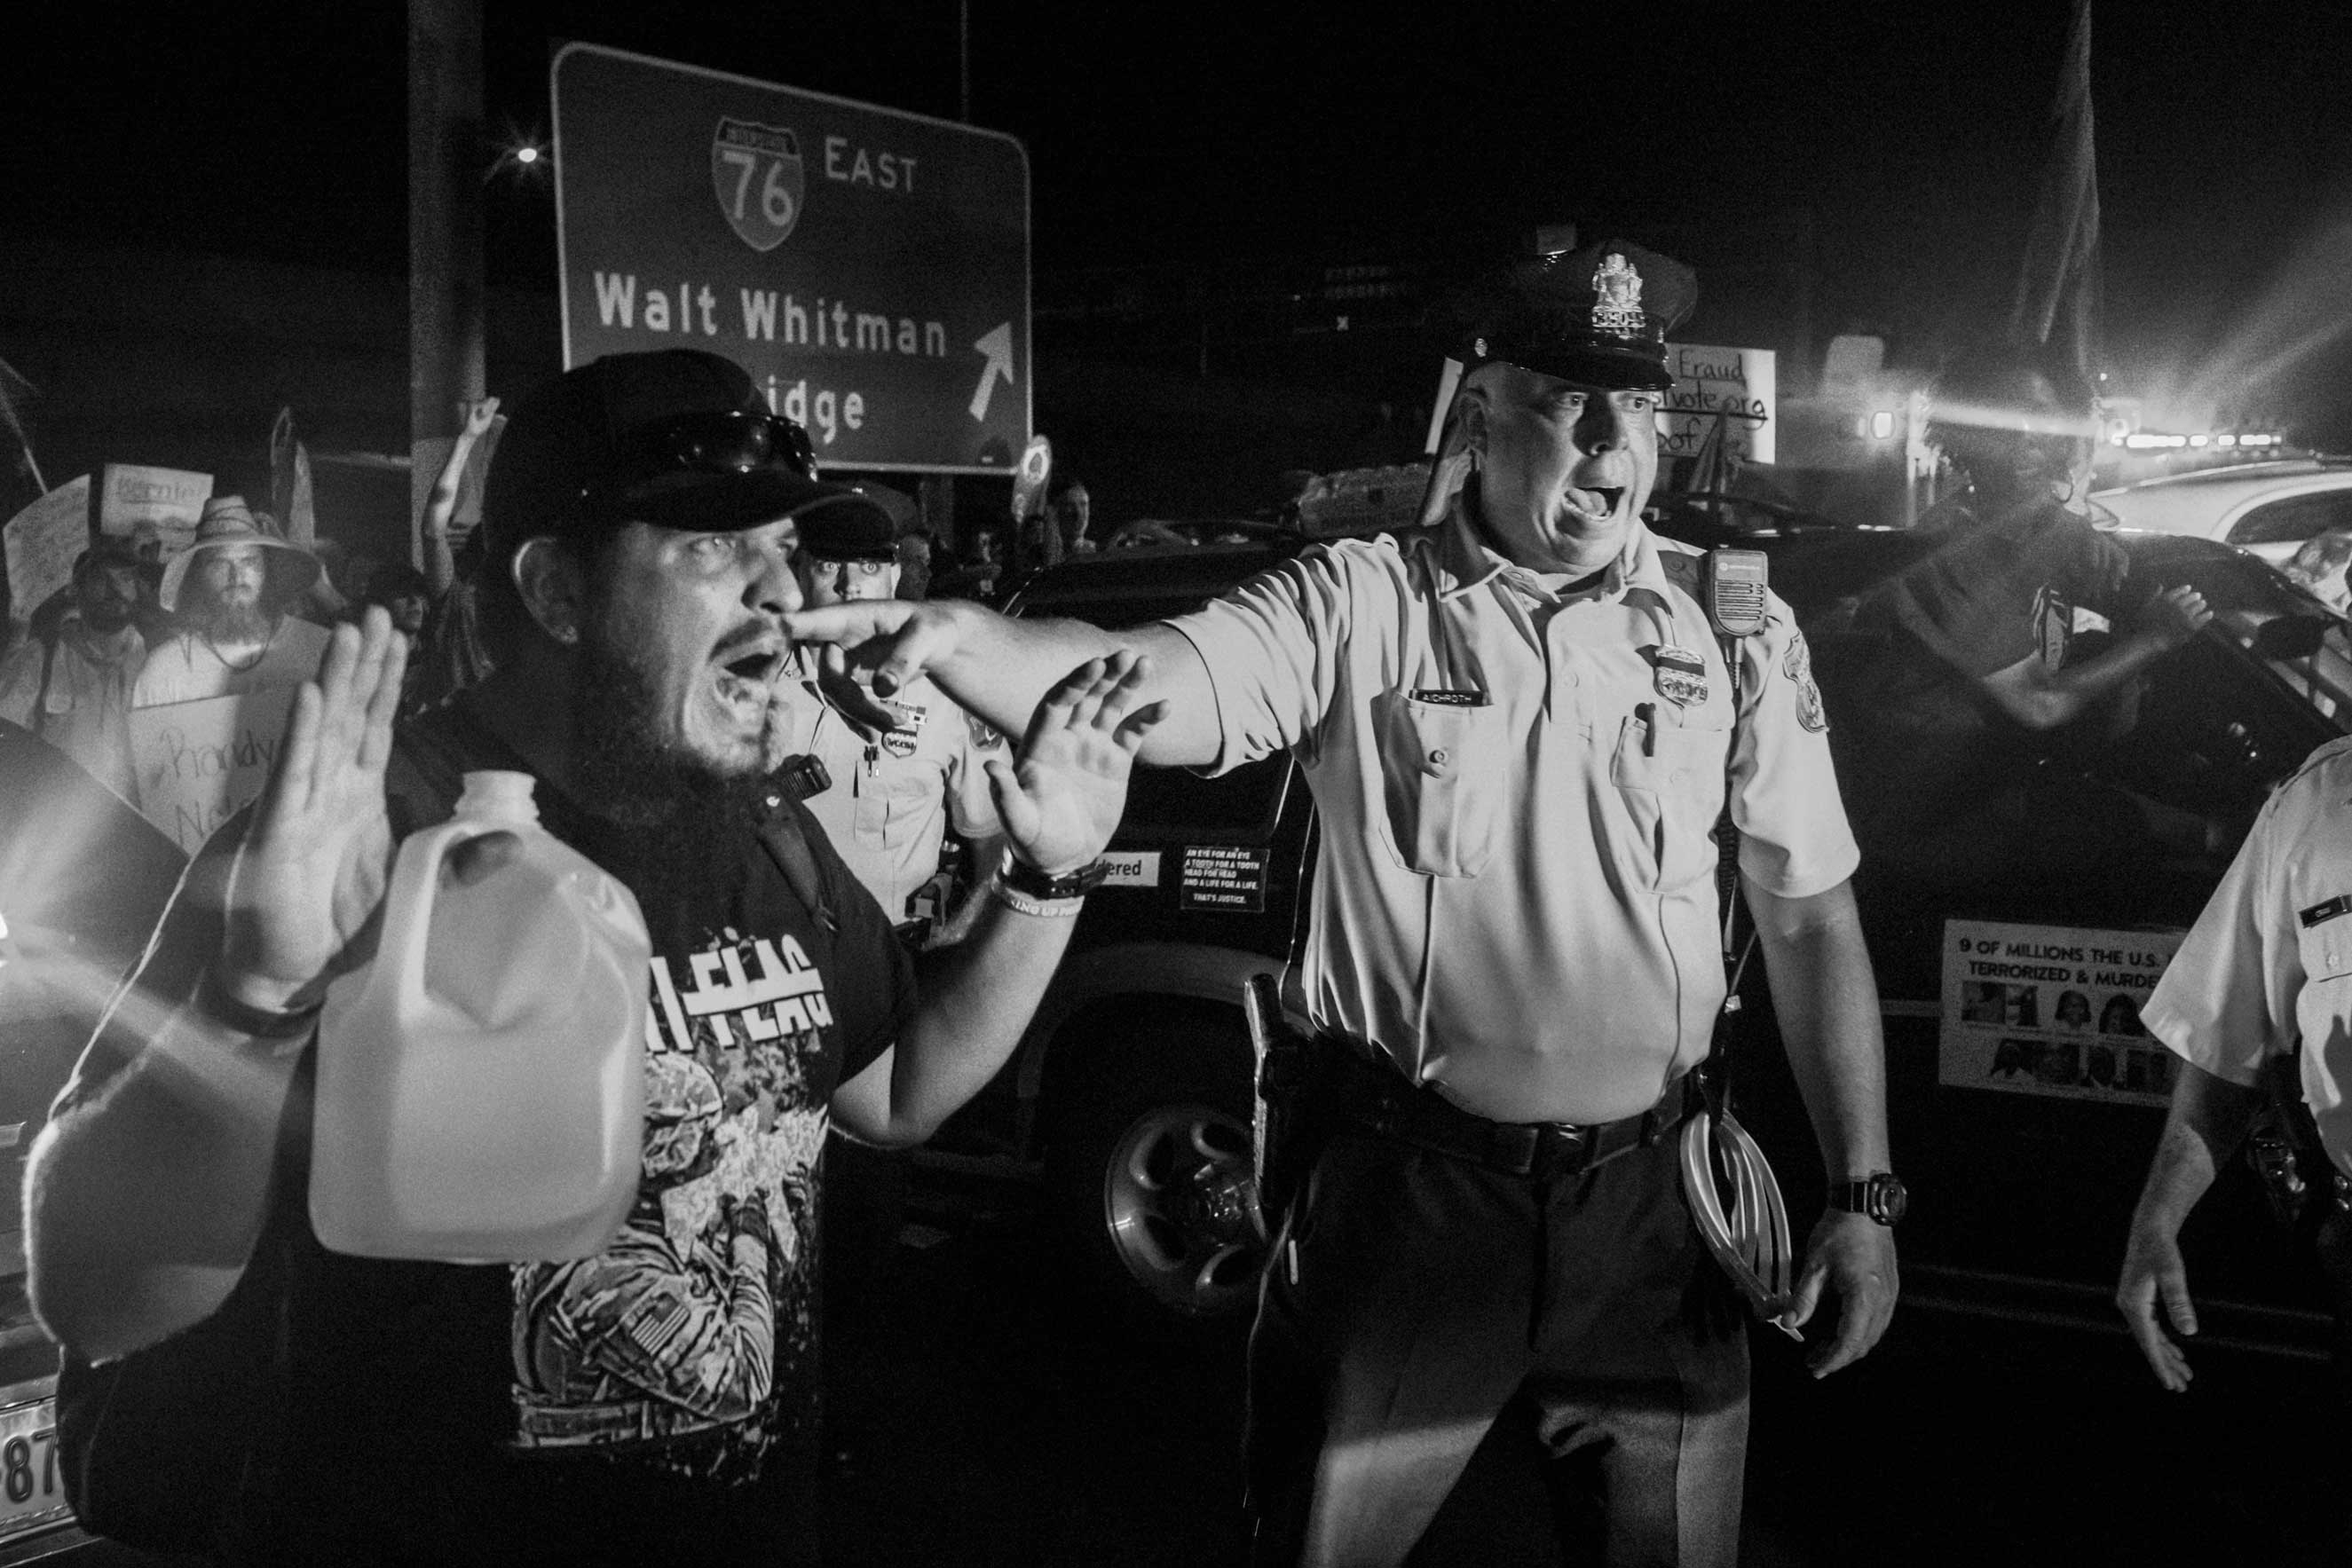 26 July 2016 - Philadelphia, PA - Police clashes with the  Shut Down the DNC!  march. Activists from the Black Lives Matter movement are guiding the march and holding speeches. The march remained peaceful.